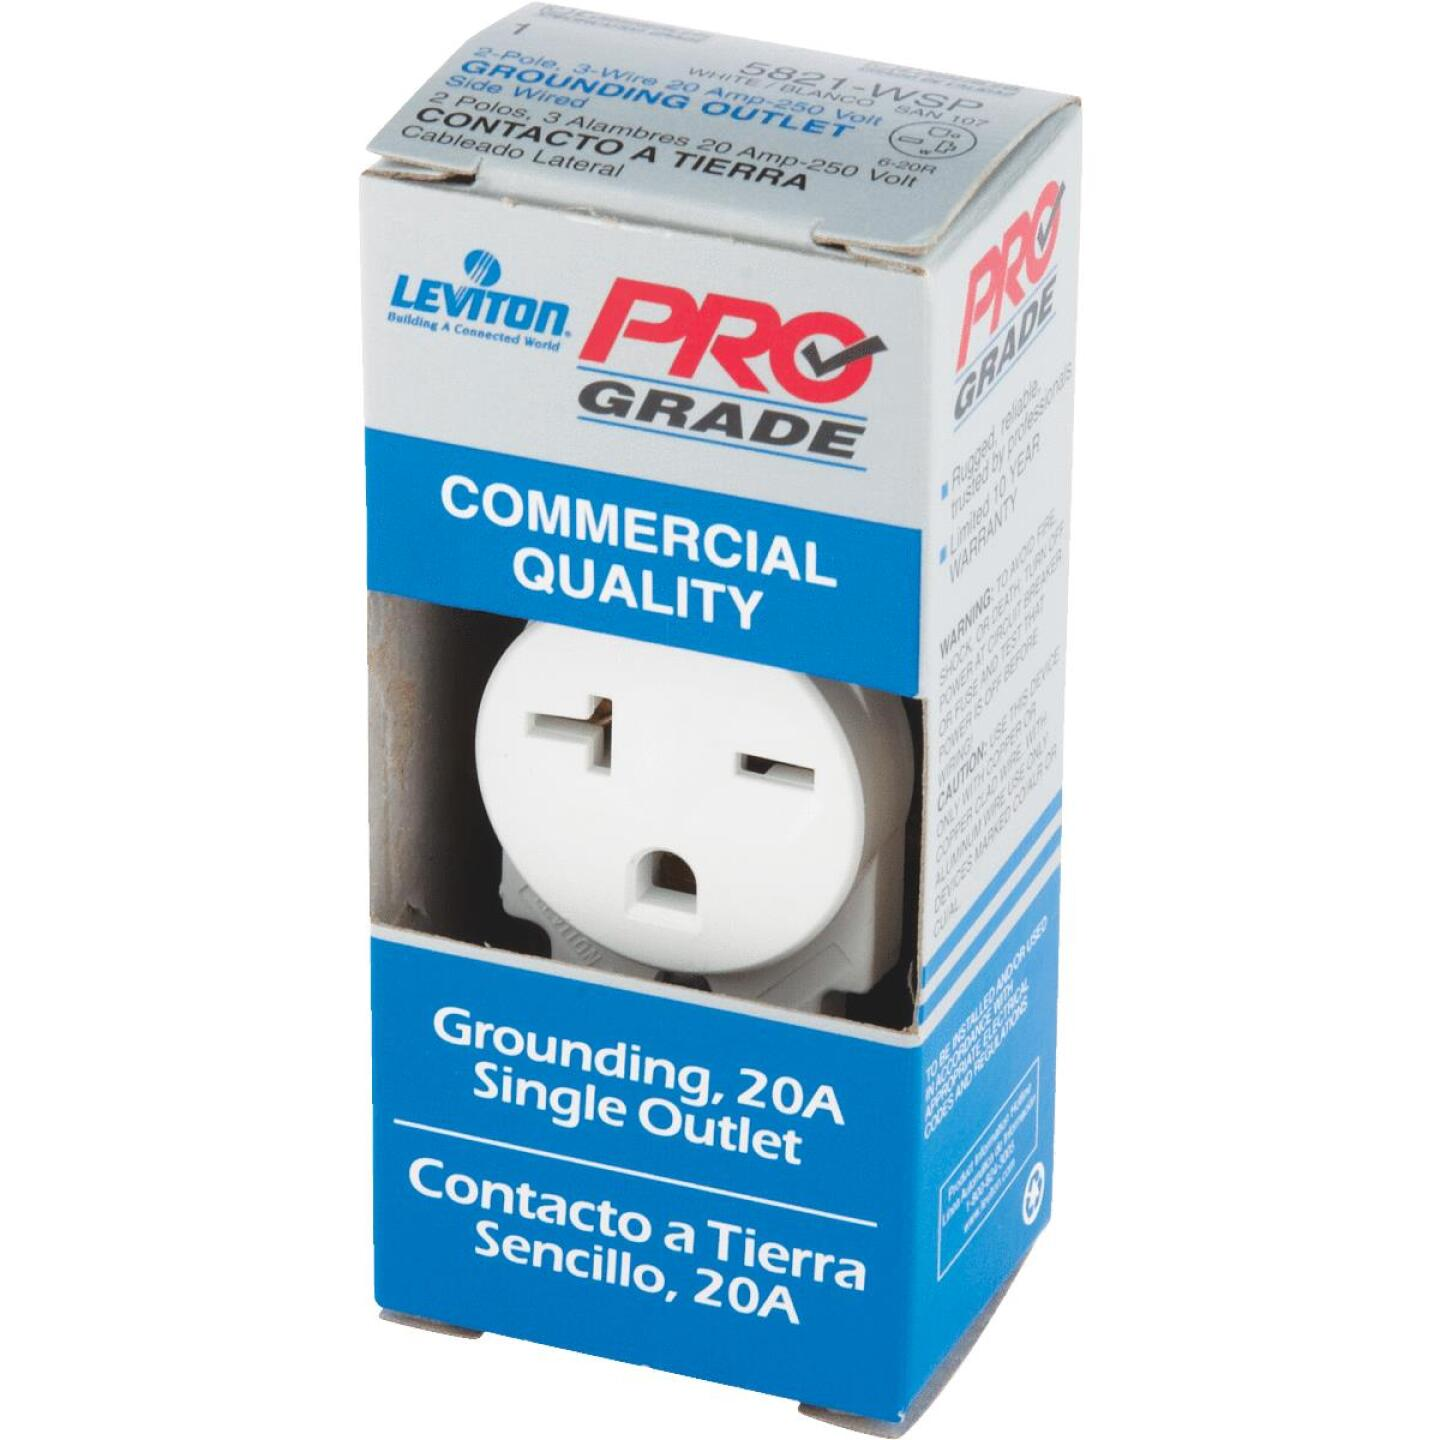 Leviton 20A White Heavy-Duty 6-20R Grounding Single Outlet Image 3